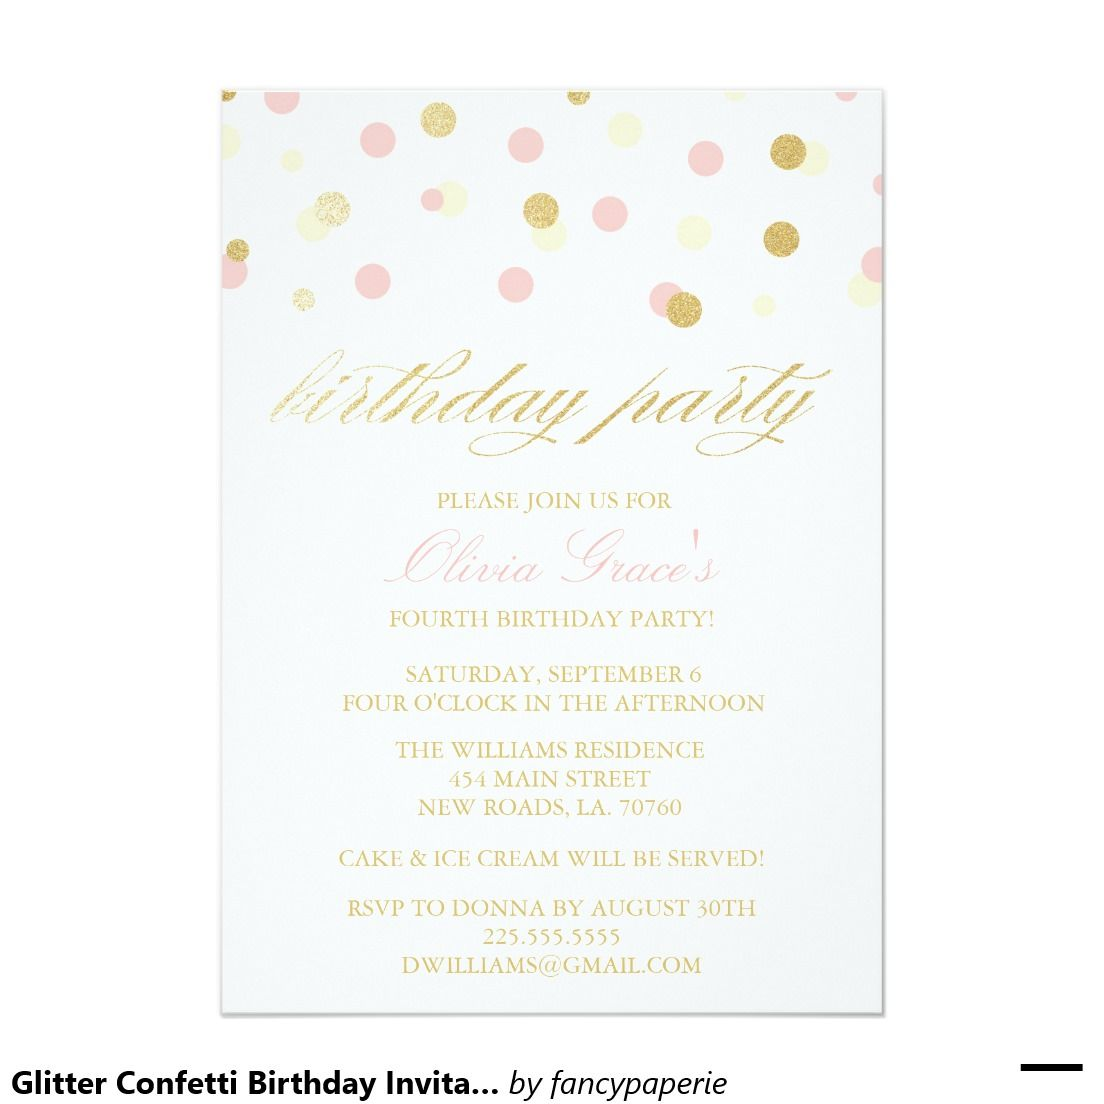 Glitter confetti birthday invitations glitter confetti confetti glitter confetti birthday invitations stopboris Image collections